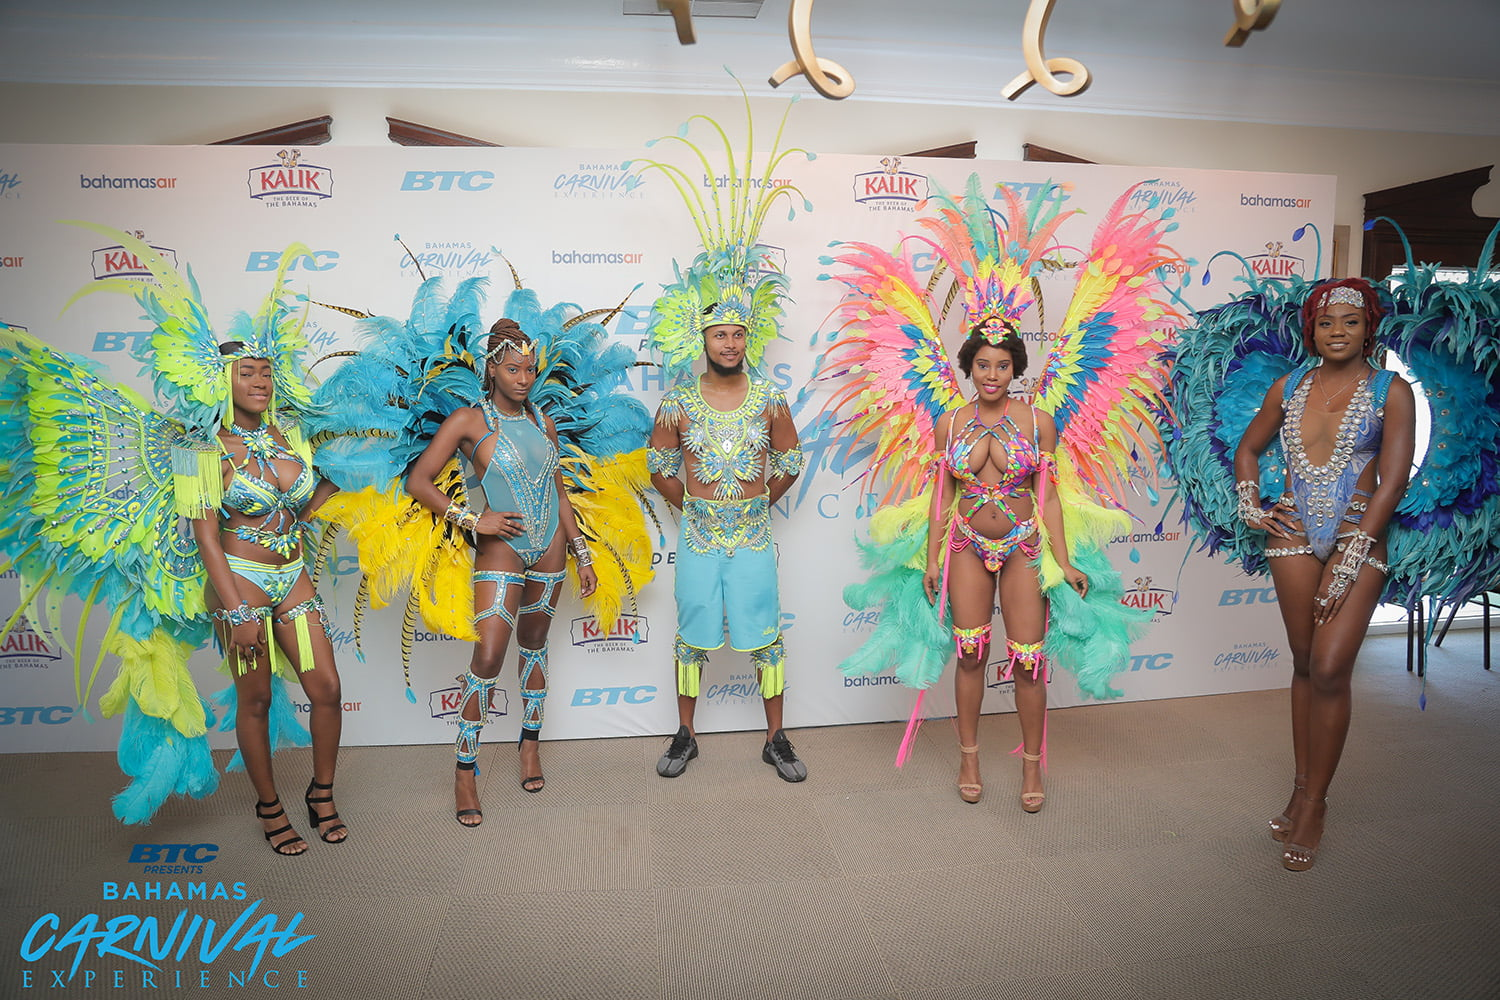 Bahamas Carnival Experience 2019 Officially Launched